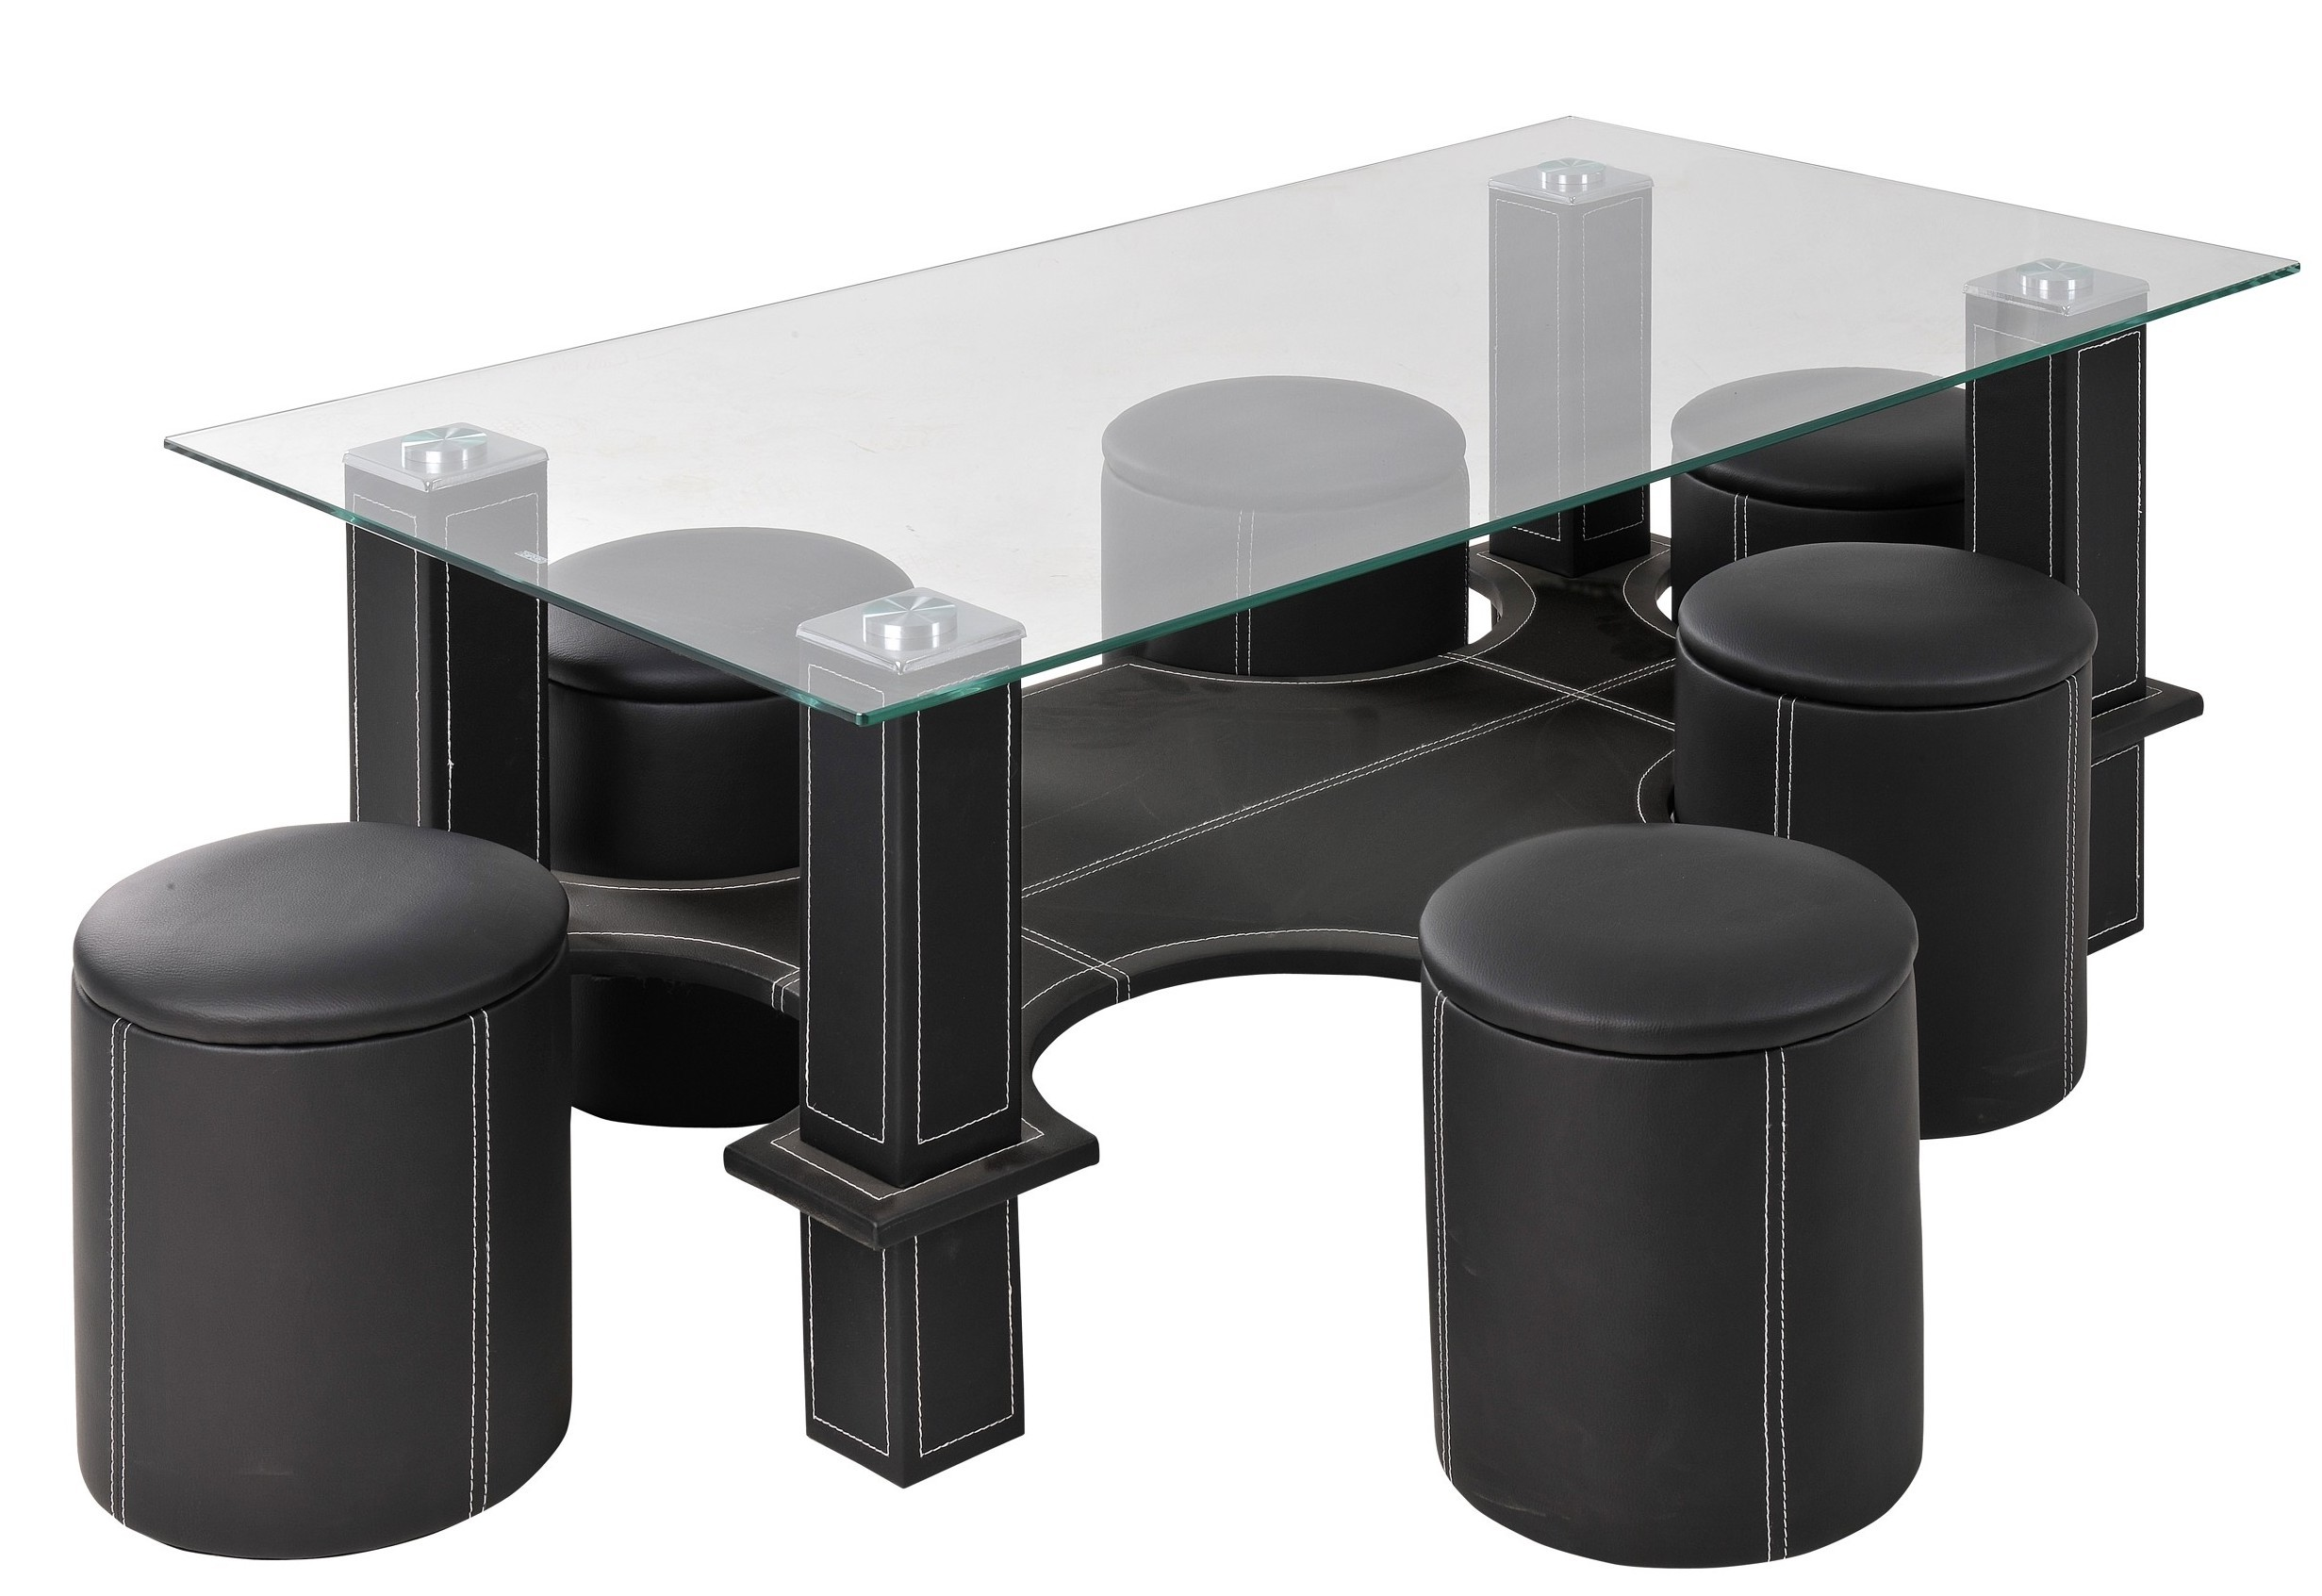 table basse rectangulaire et 6 poufs simili noir kuadri. Black Bedroom Furniture Sets. Home Design Ideas